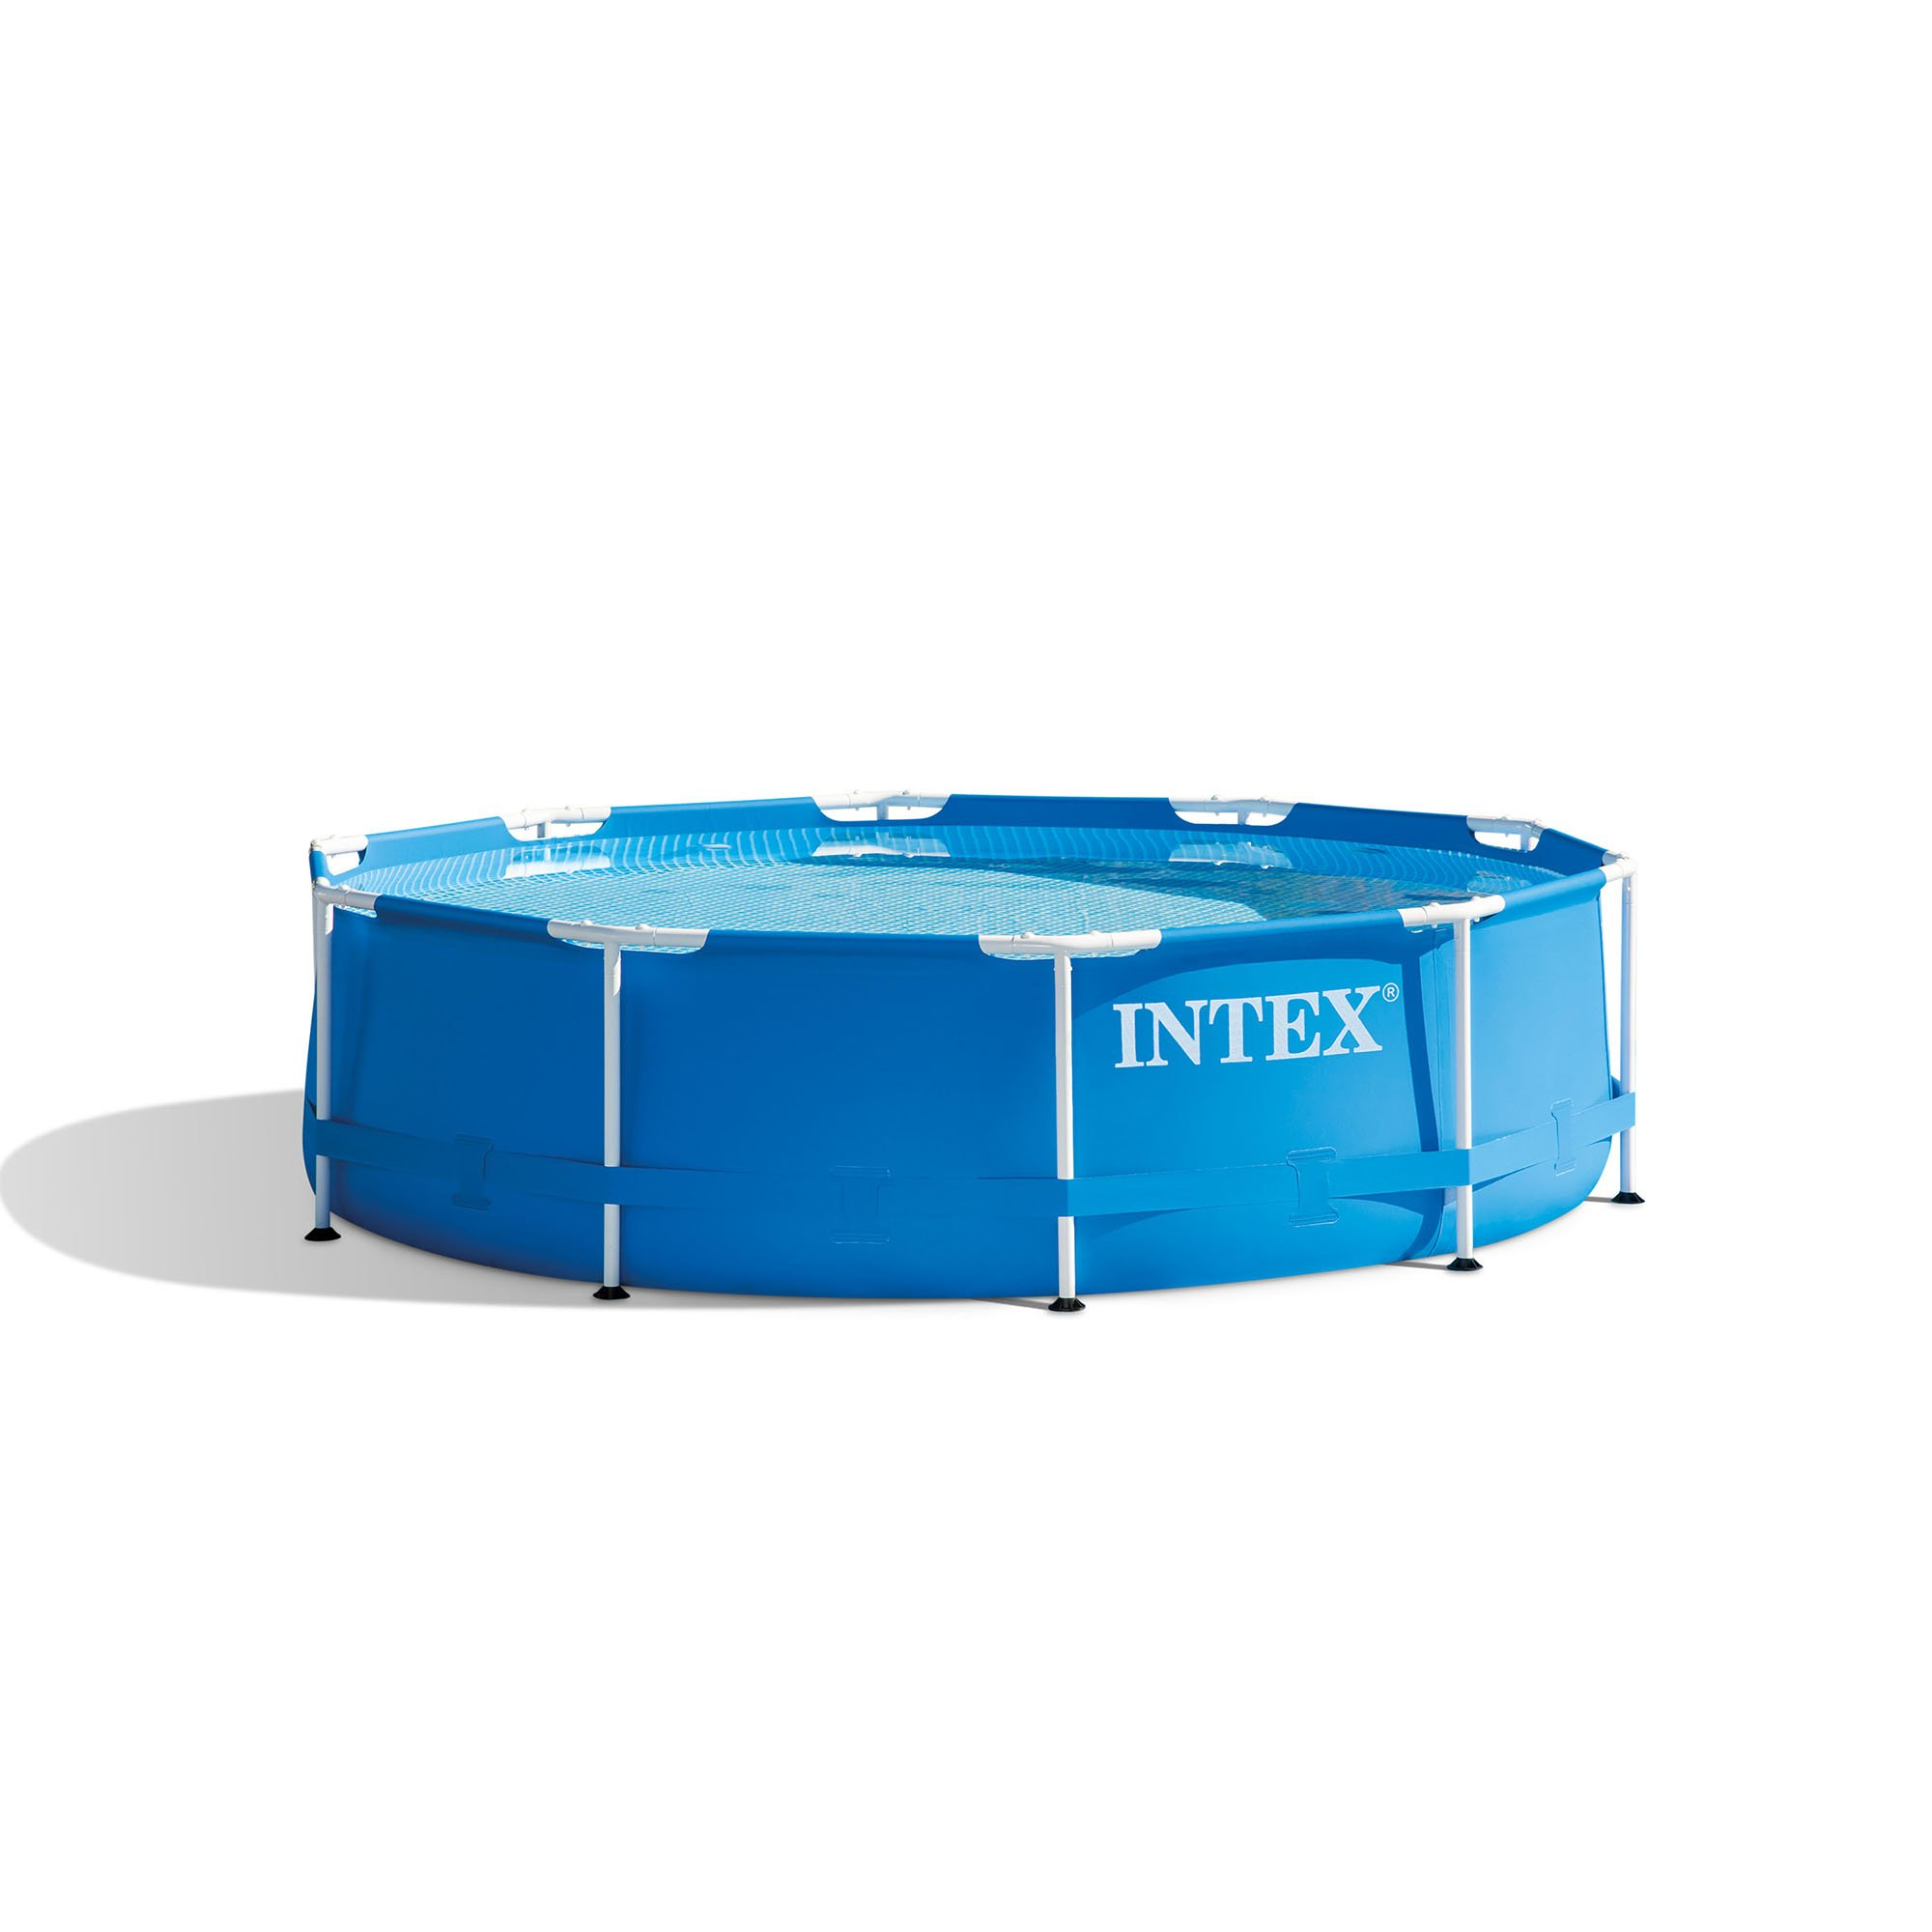 Intex 10 39 x 30 metal frame swimming pool set with filter pump 28201eh ebay - Steel frame pool ...